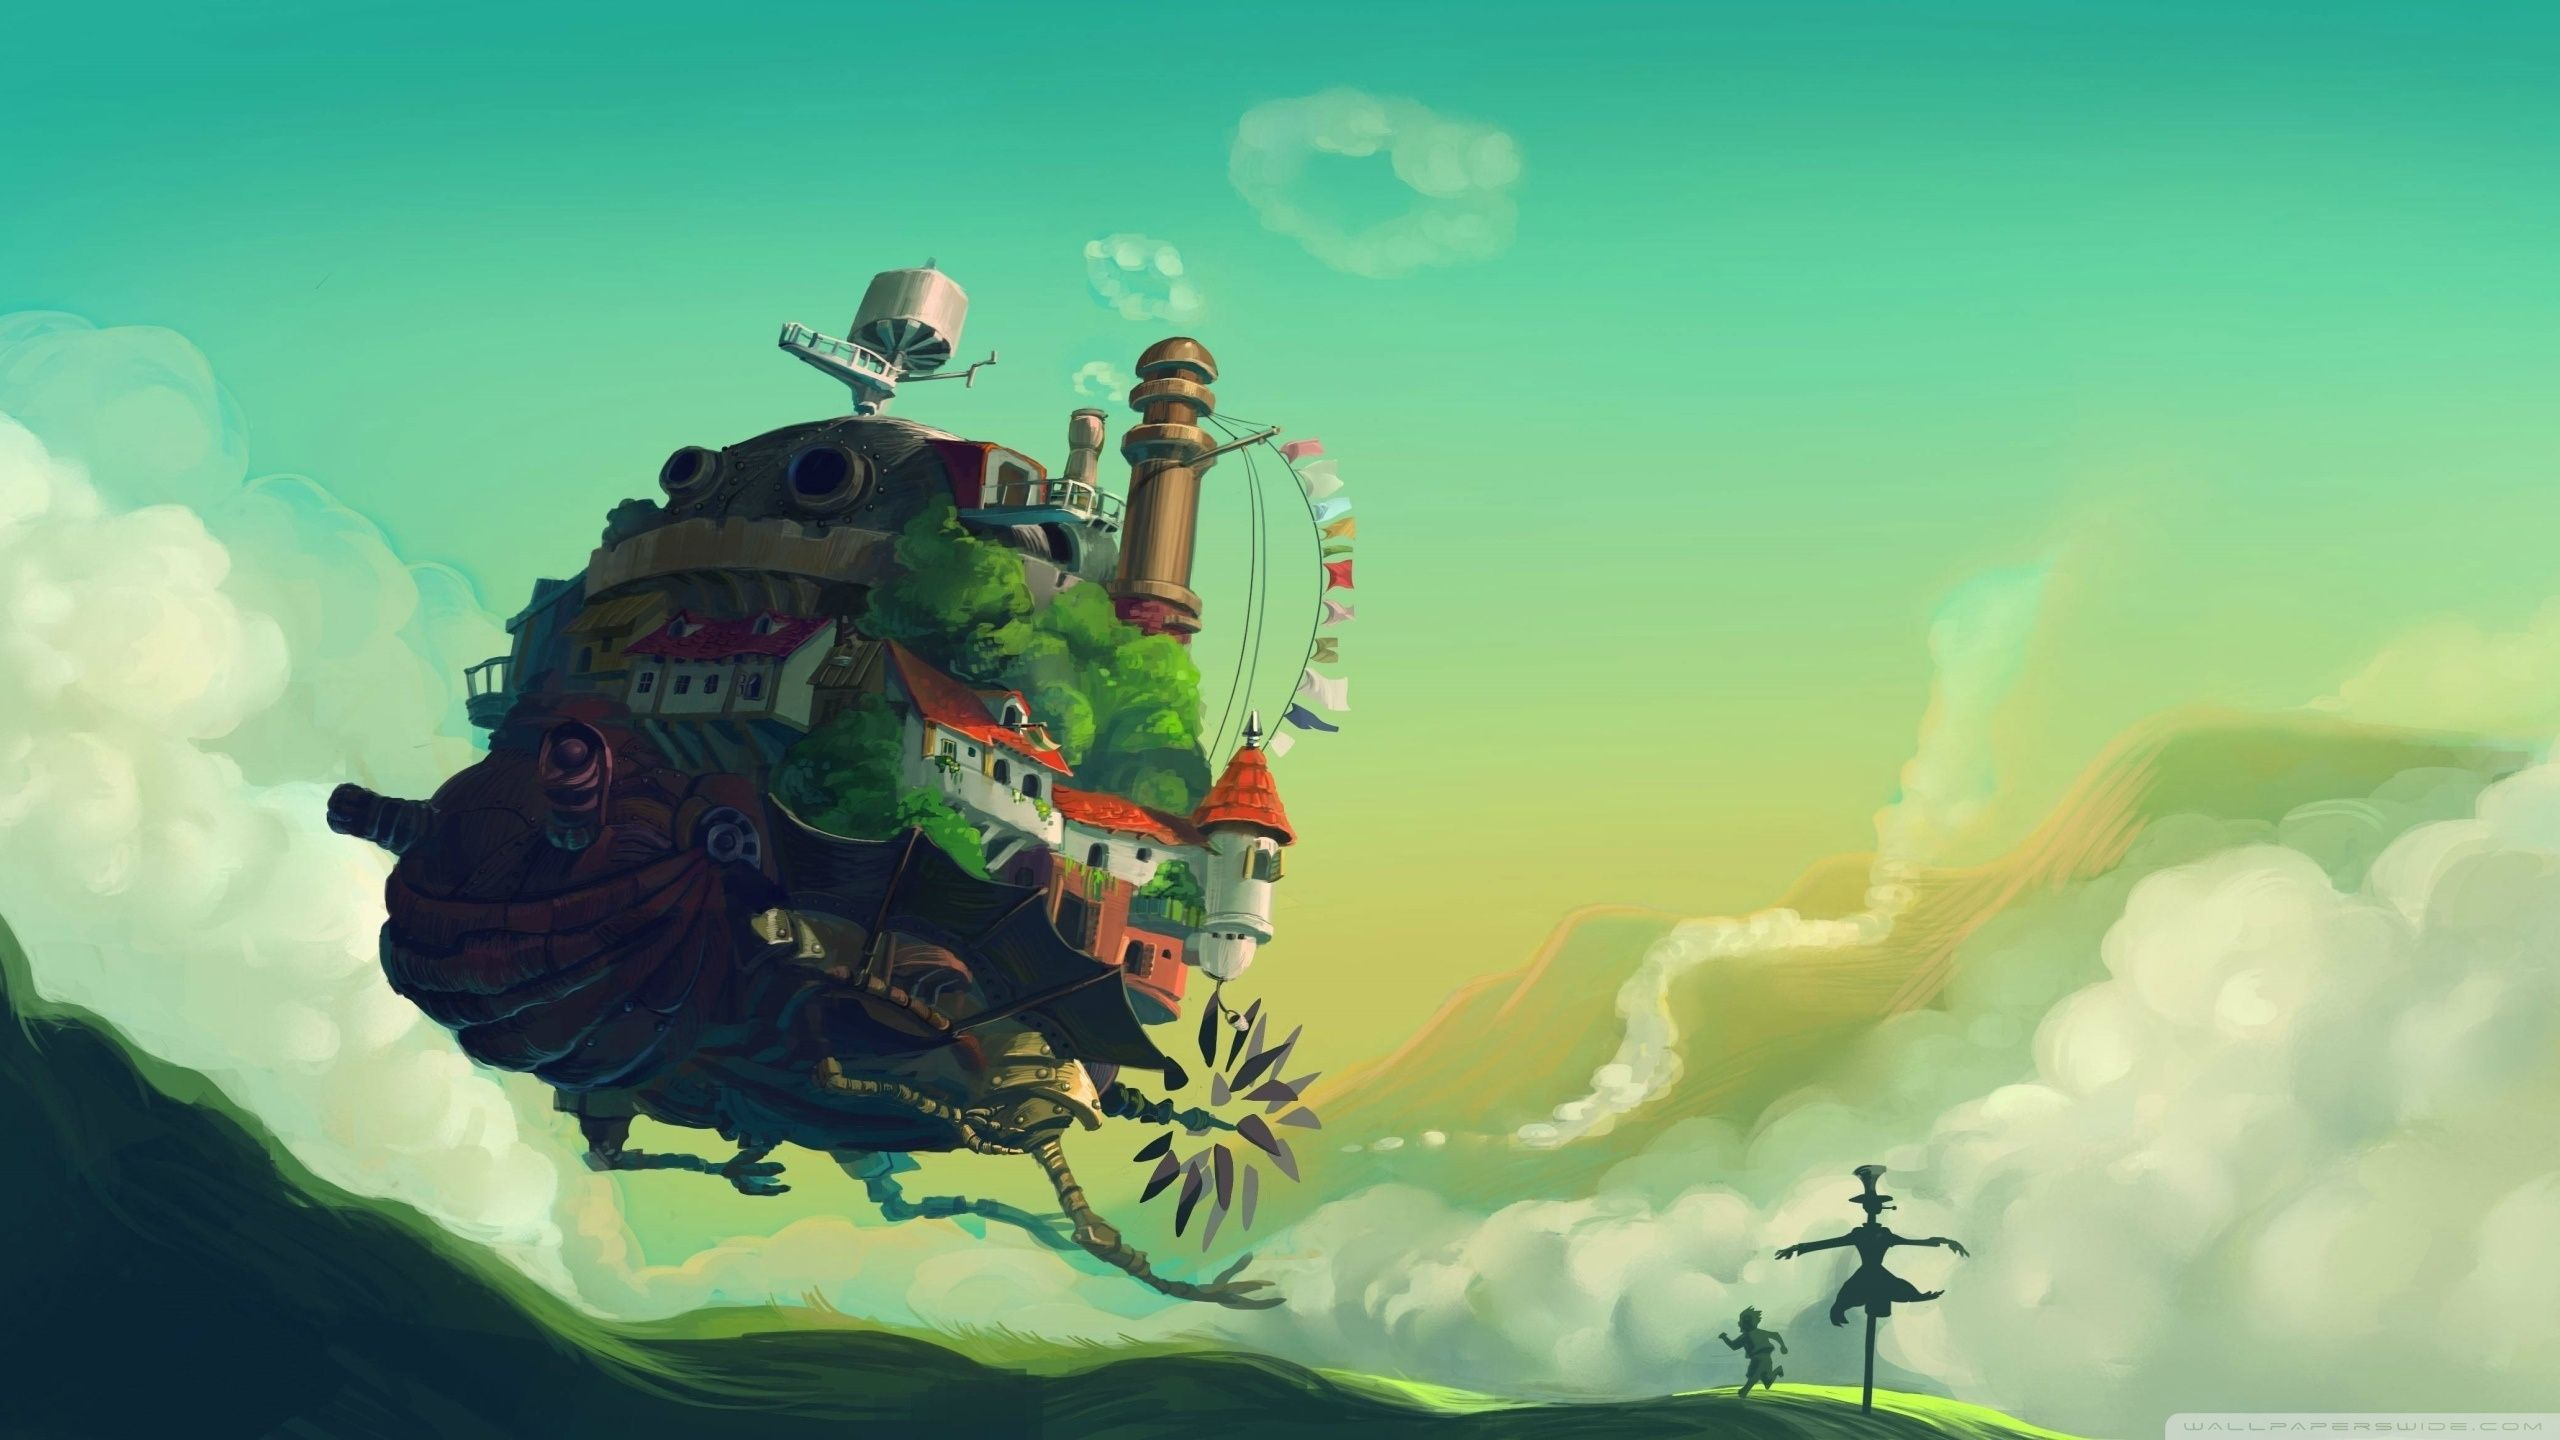 10 Latest Howl S Moving Castle Wallpaper Widescreen Full Hd 1080p For Pc Background Howls Moving Castle Wallpaper Anime Wallpaper Studio Ghibli Art